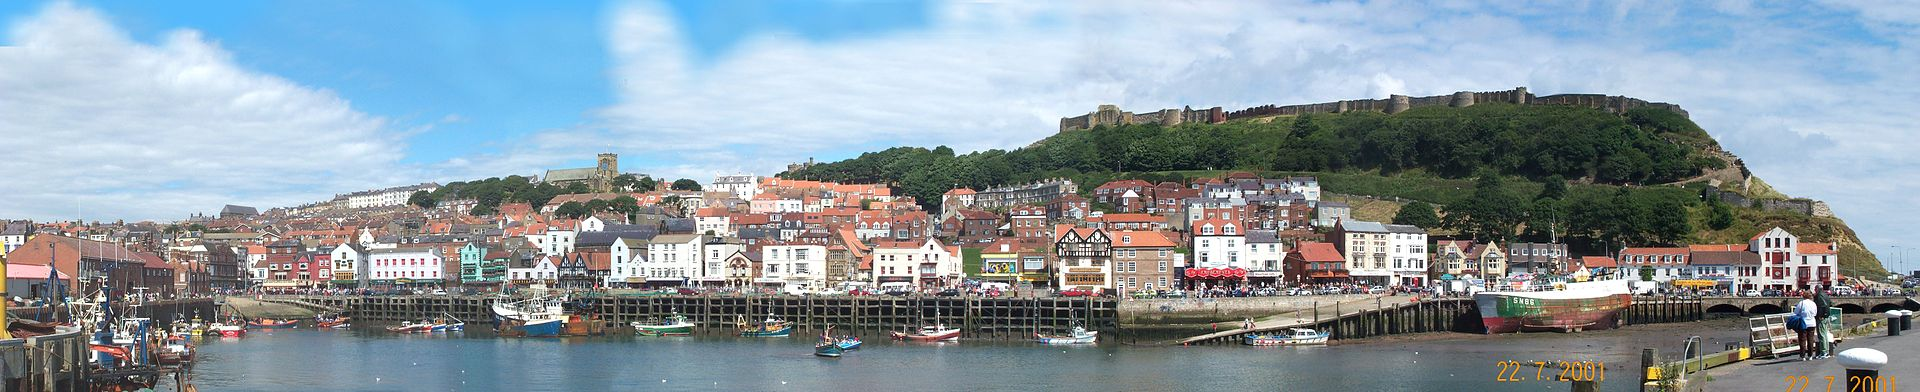 South bay panorama shot of Scarborough on the Yorkshire coast